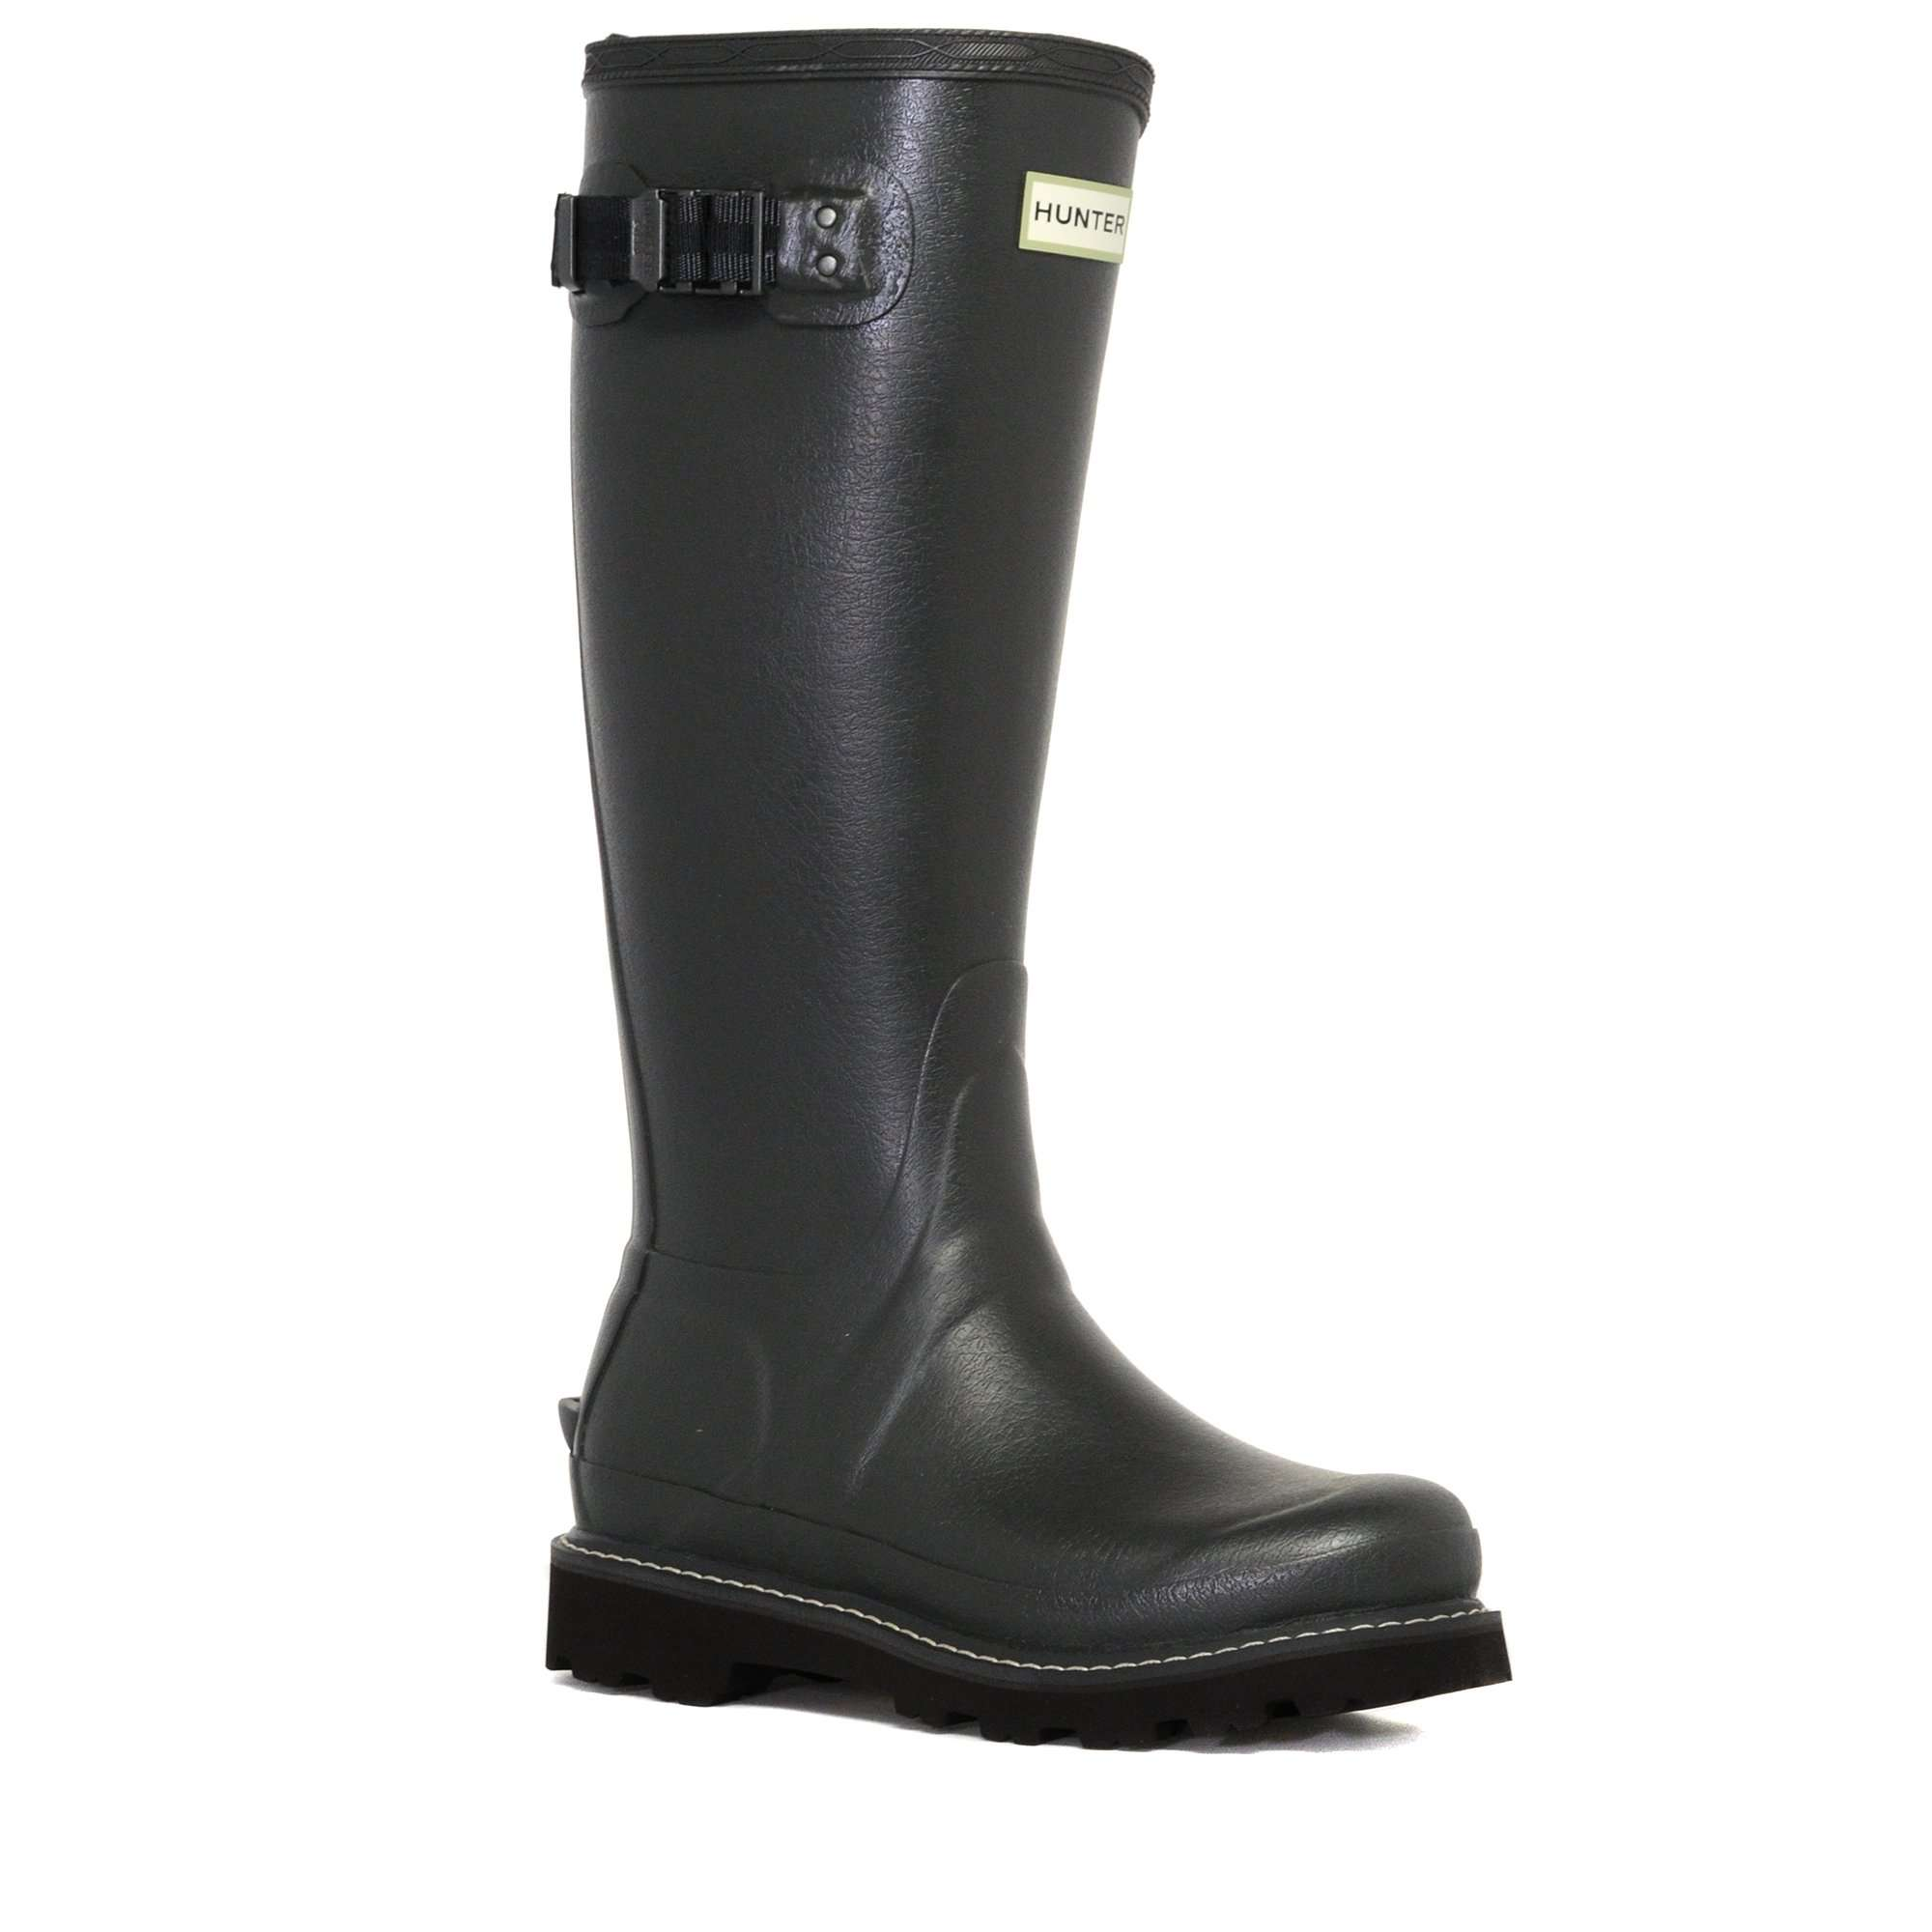 HUNTER Women's Balmoral Poly-Lined Wellies